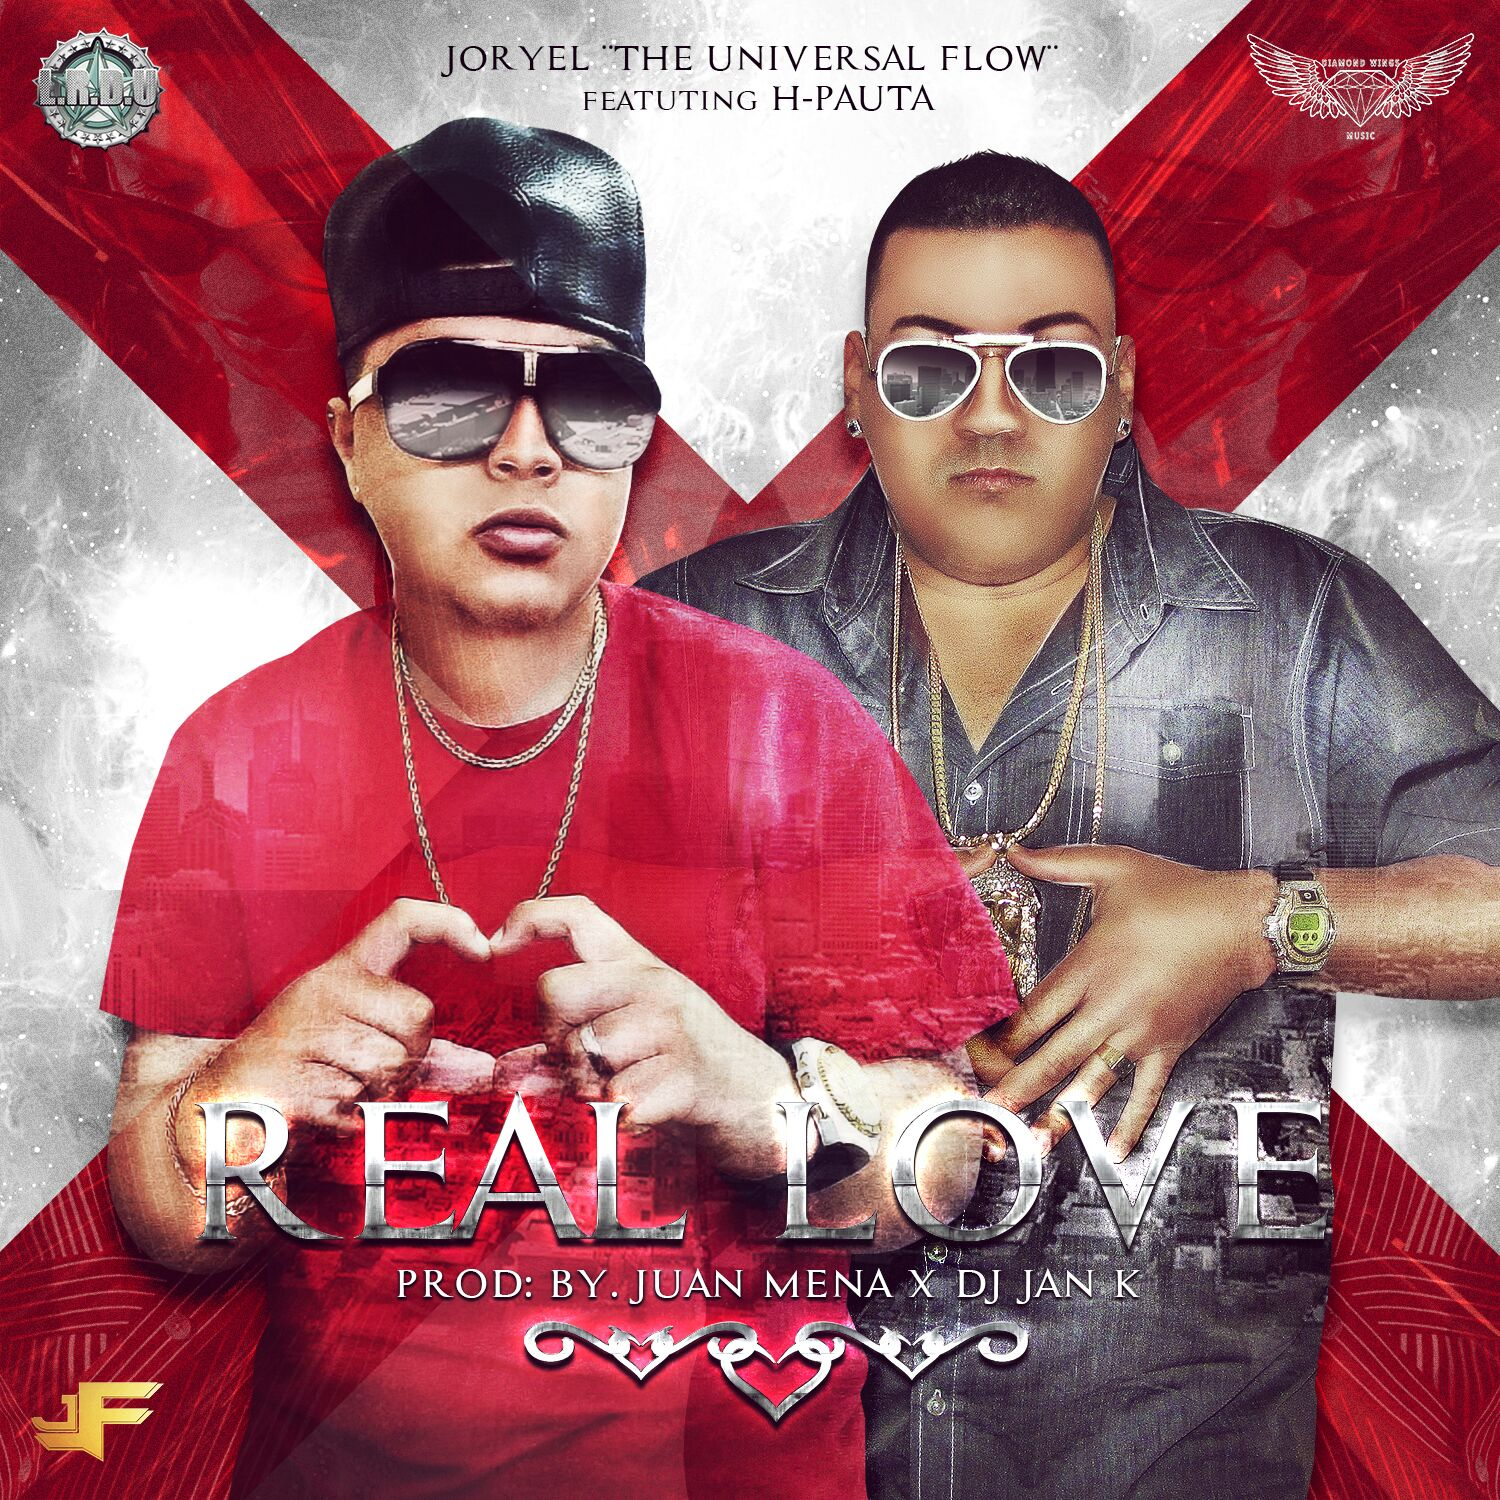 Real Love Art - Joryel The Universal Flow Ft. H Pauta - Real Love